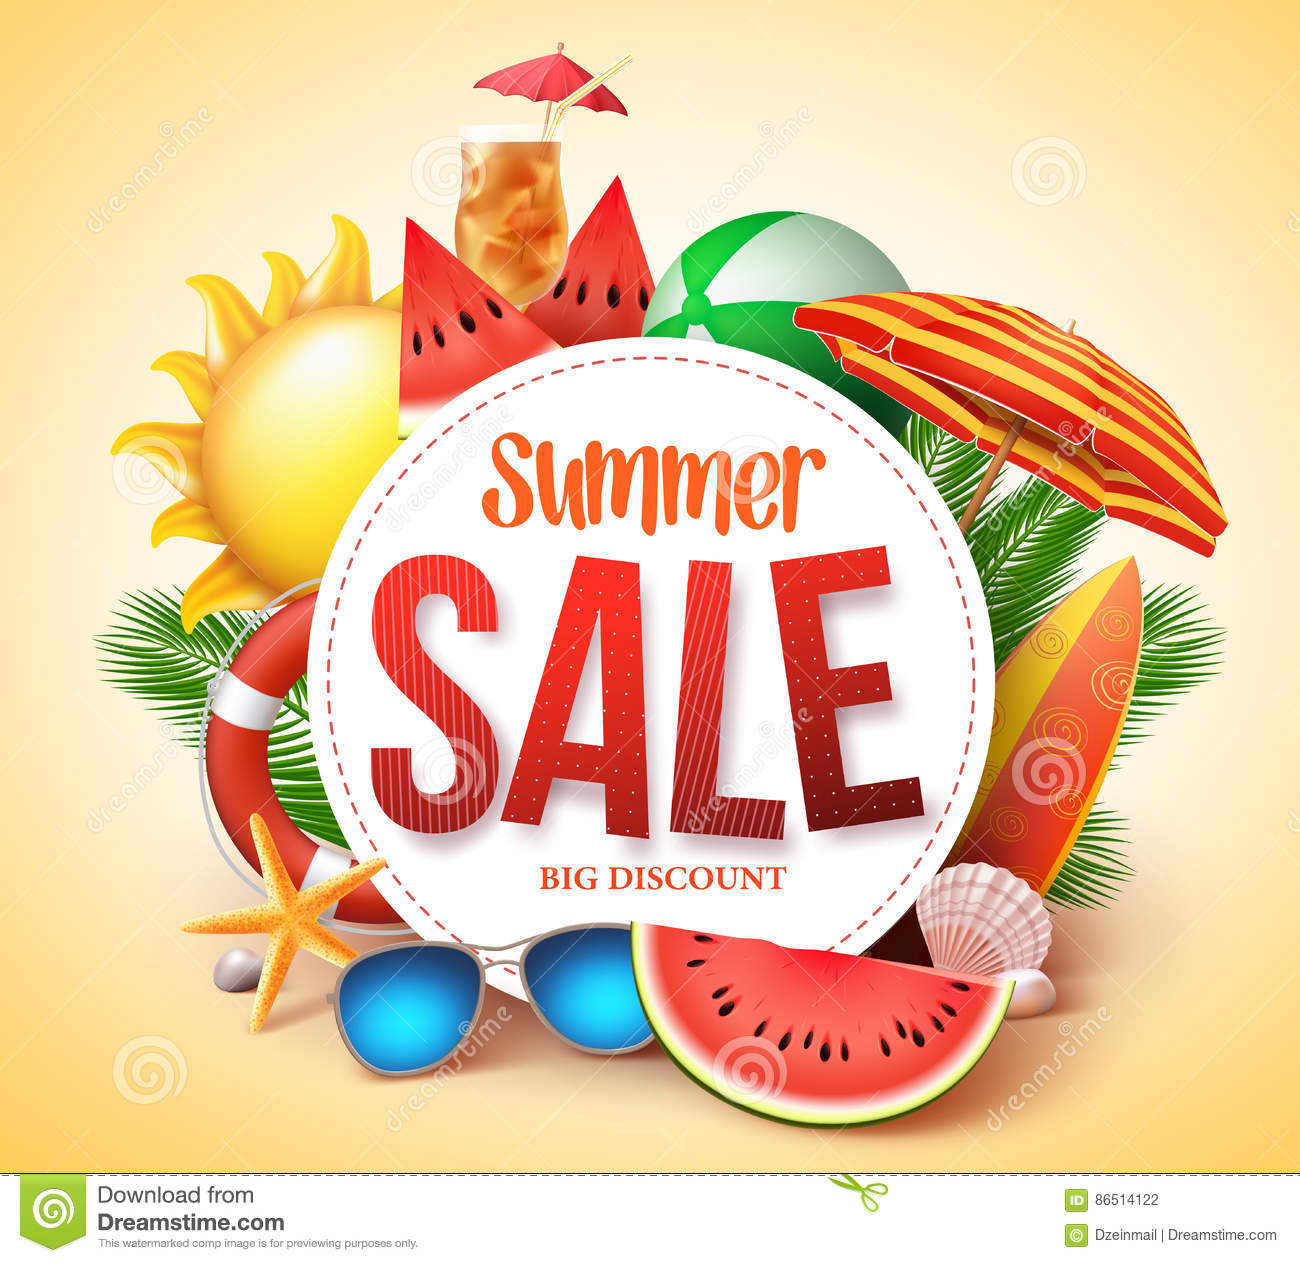 Summer sale vector banner design for promotion with colorful beach elements